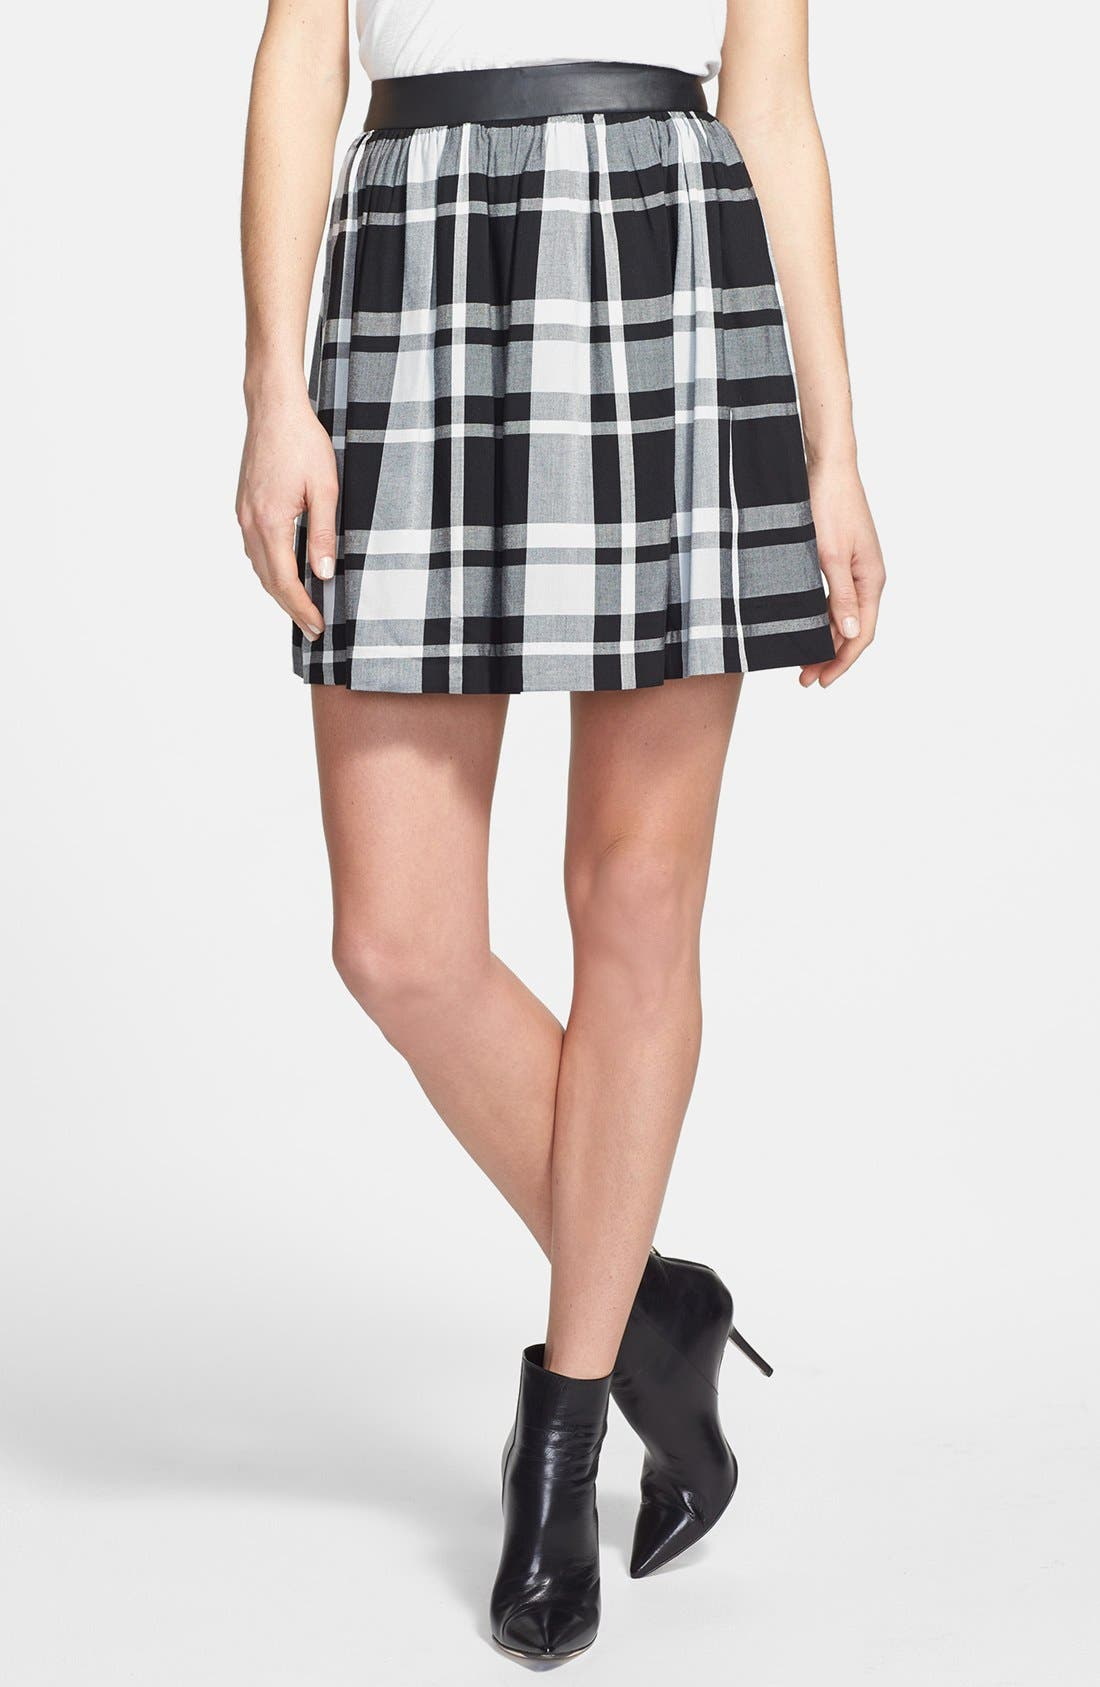 Alternate Image 1 Selected - kensie Faux Leather Waistband Plaid Skirt